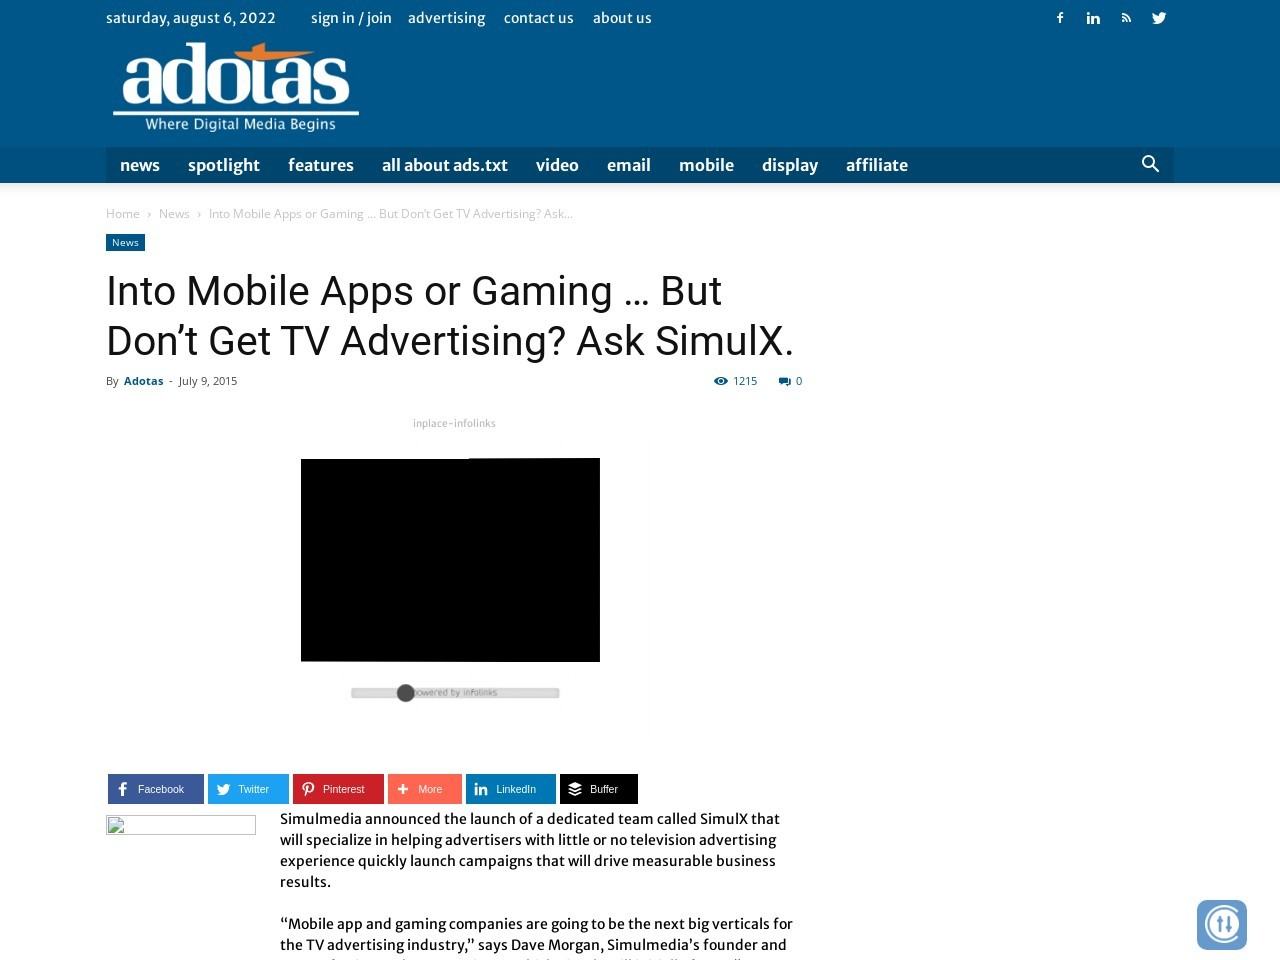 Into Mobile Apps or Gaming … But Don't Get TV Advertising? Ask SimulX.